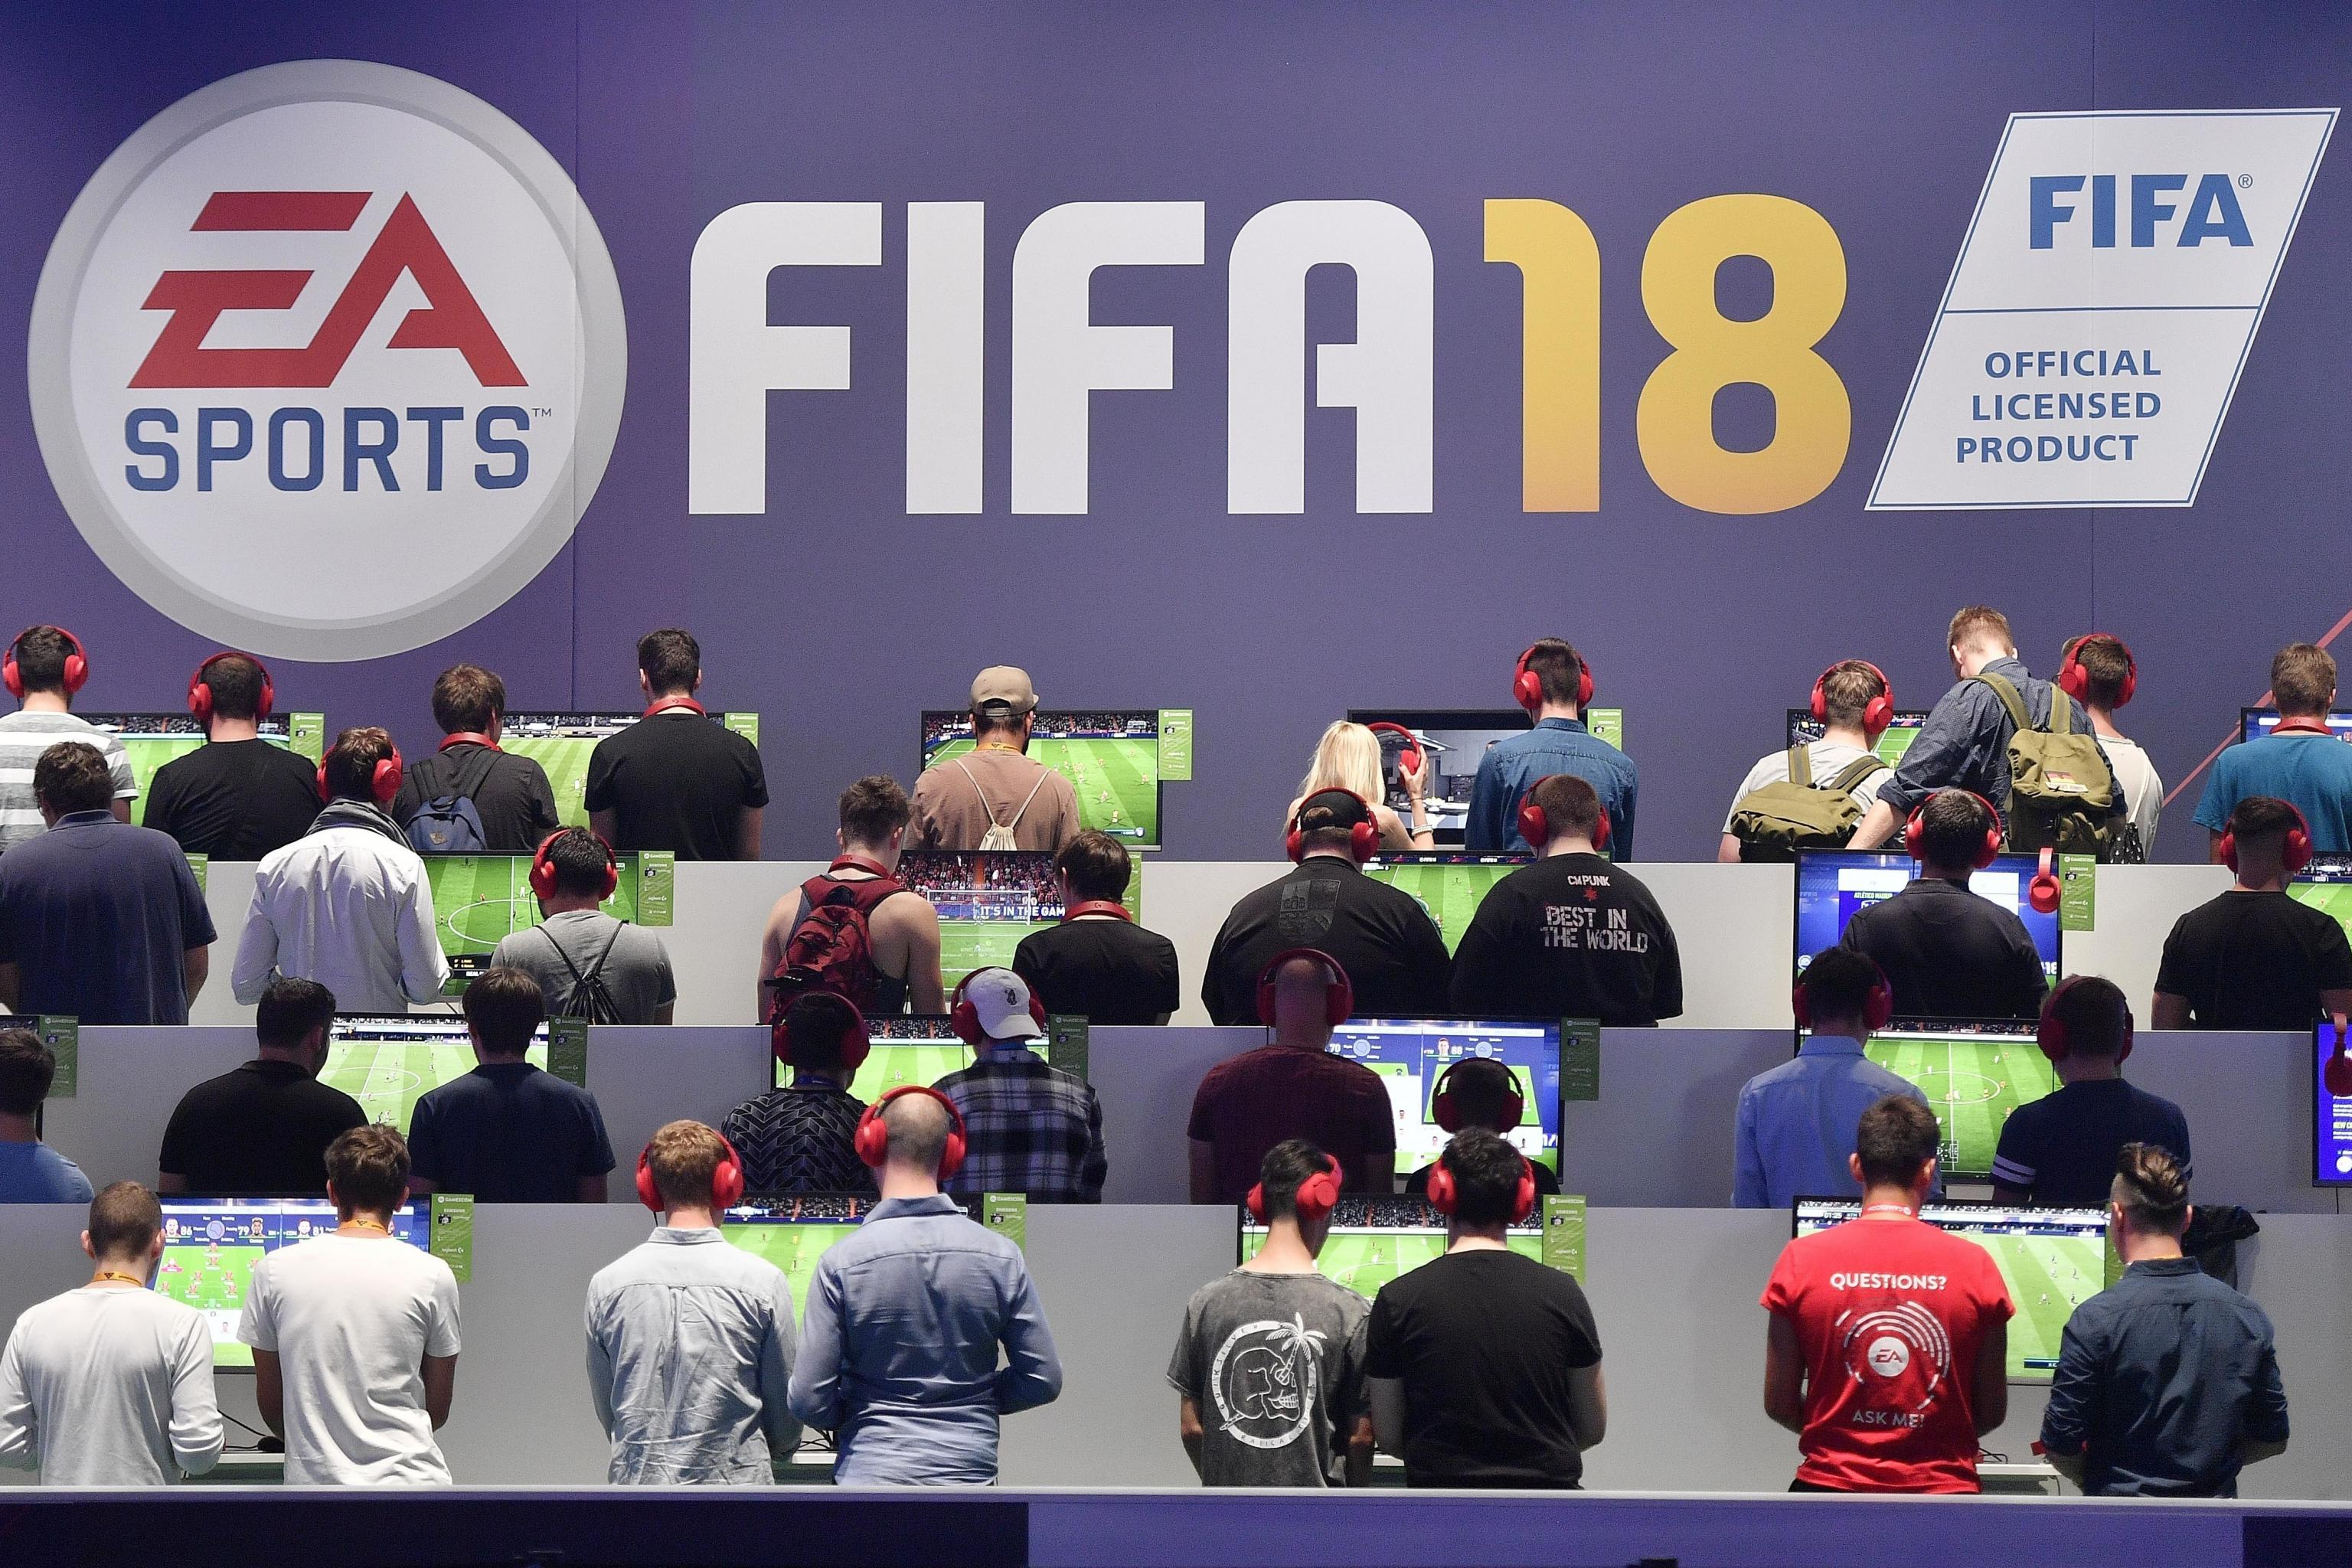 FIFA 46 Club: We Meet the Lowest-Rated Players on FIFA 18